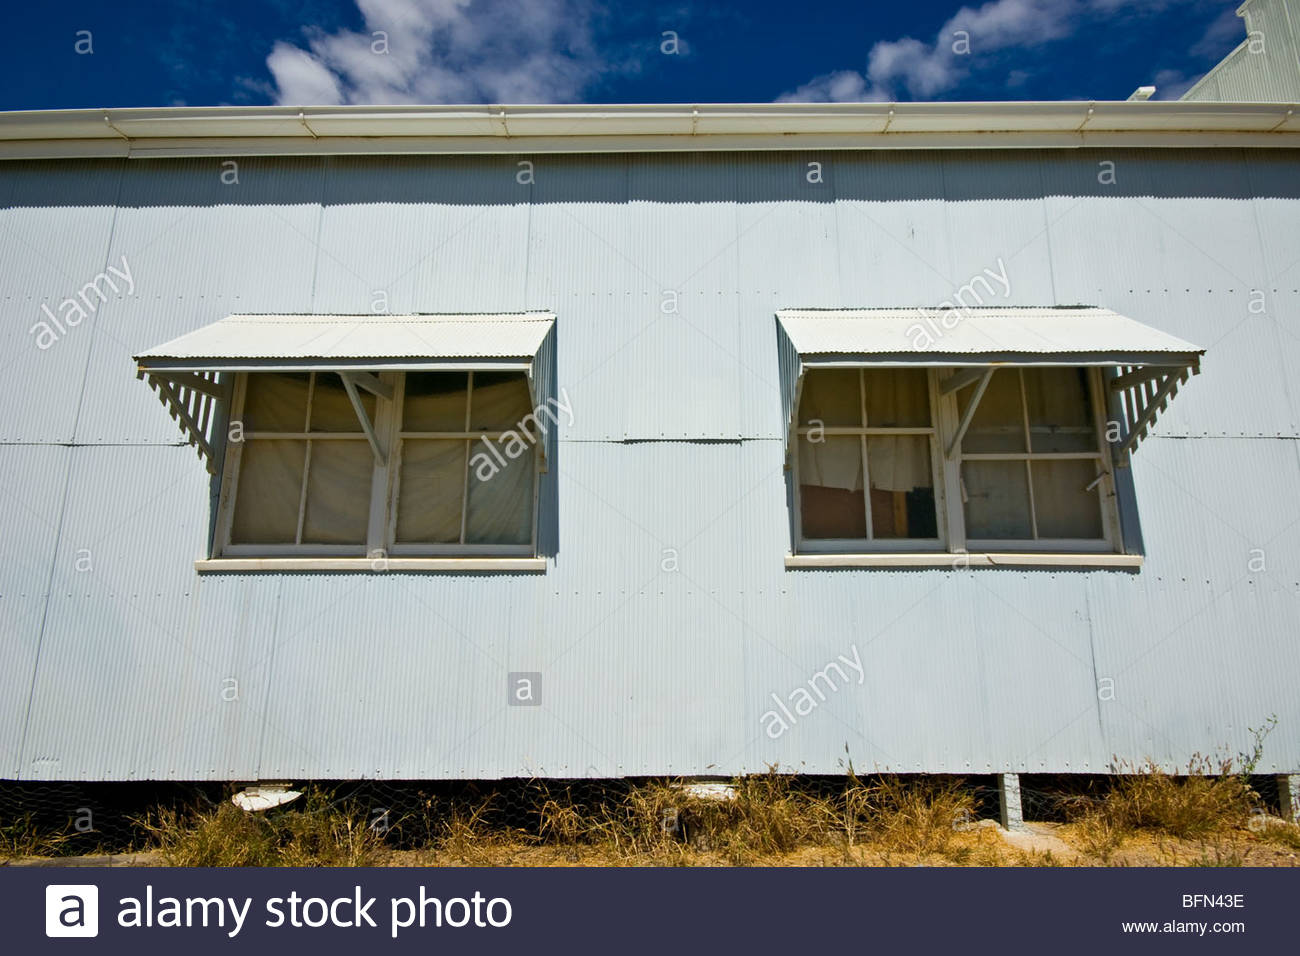 Awesome Large Awnings Cast Deep Shadows Over Windows In A Baking Outback Town